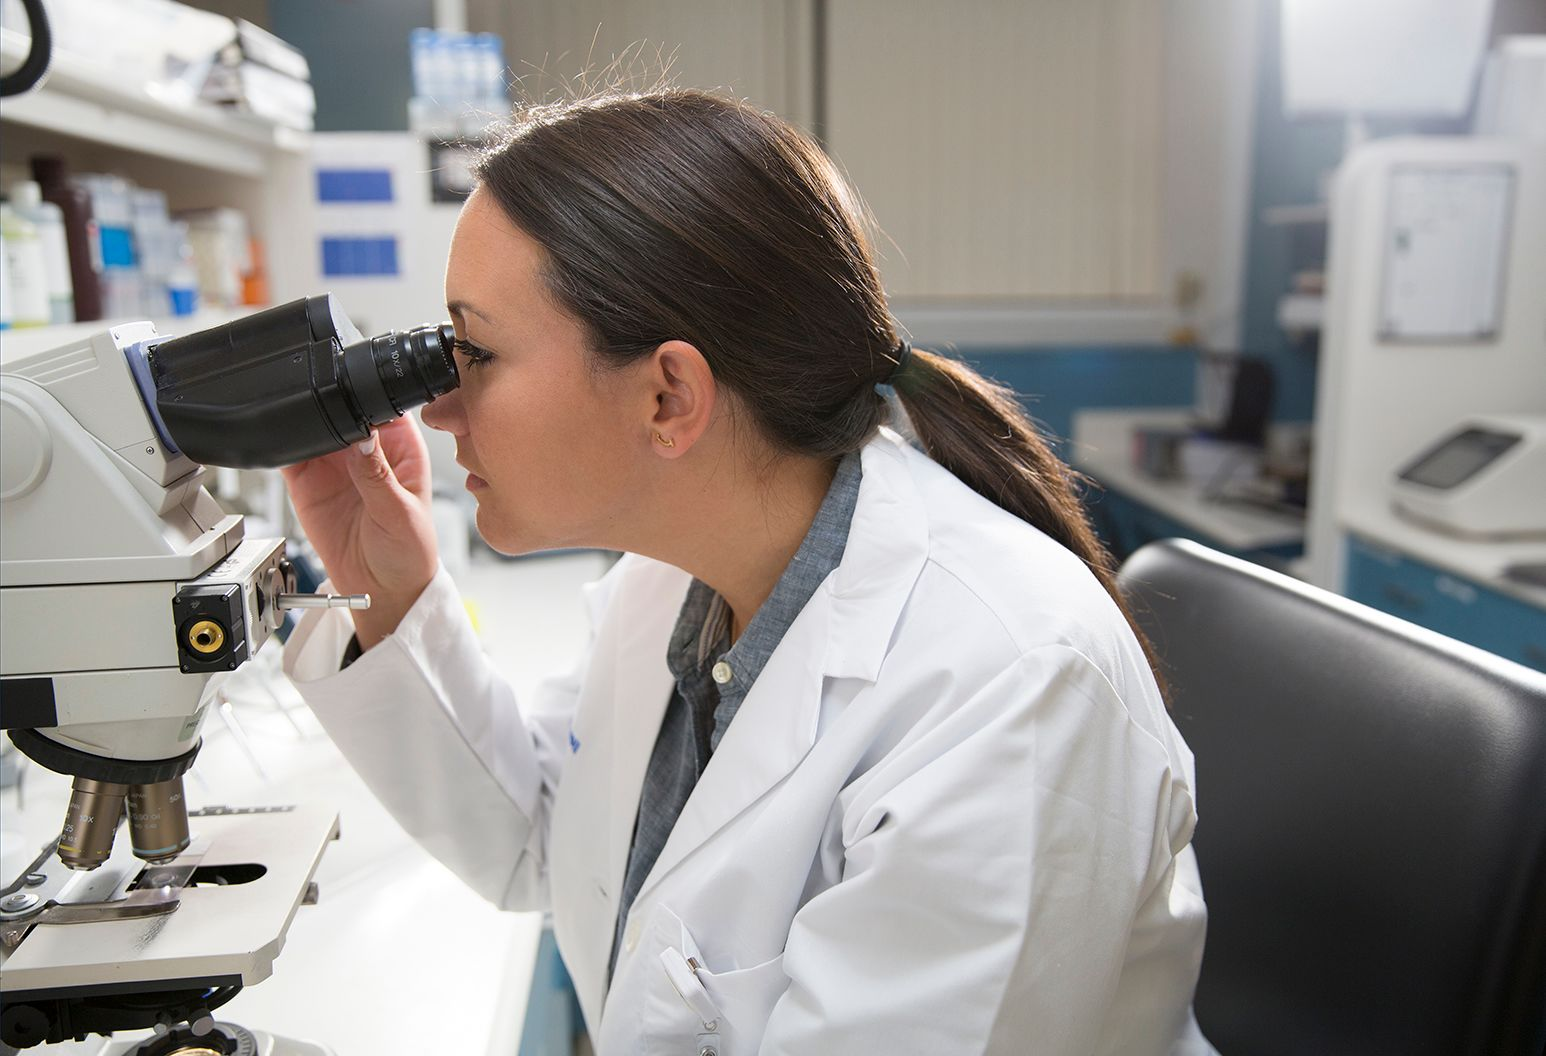 Female doctor wearing white lab coat is  looking into a microscope in a research laboratory.